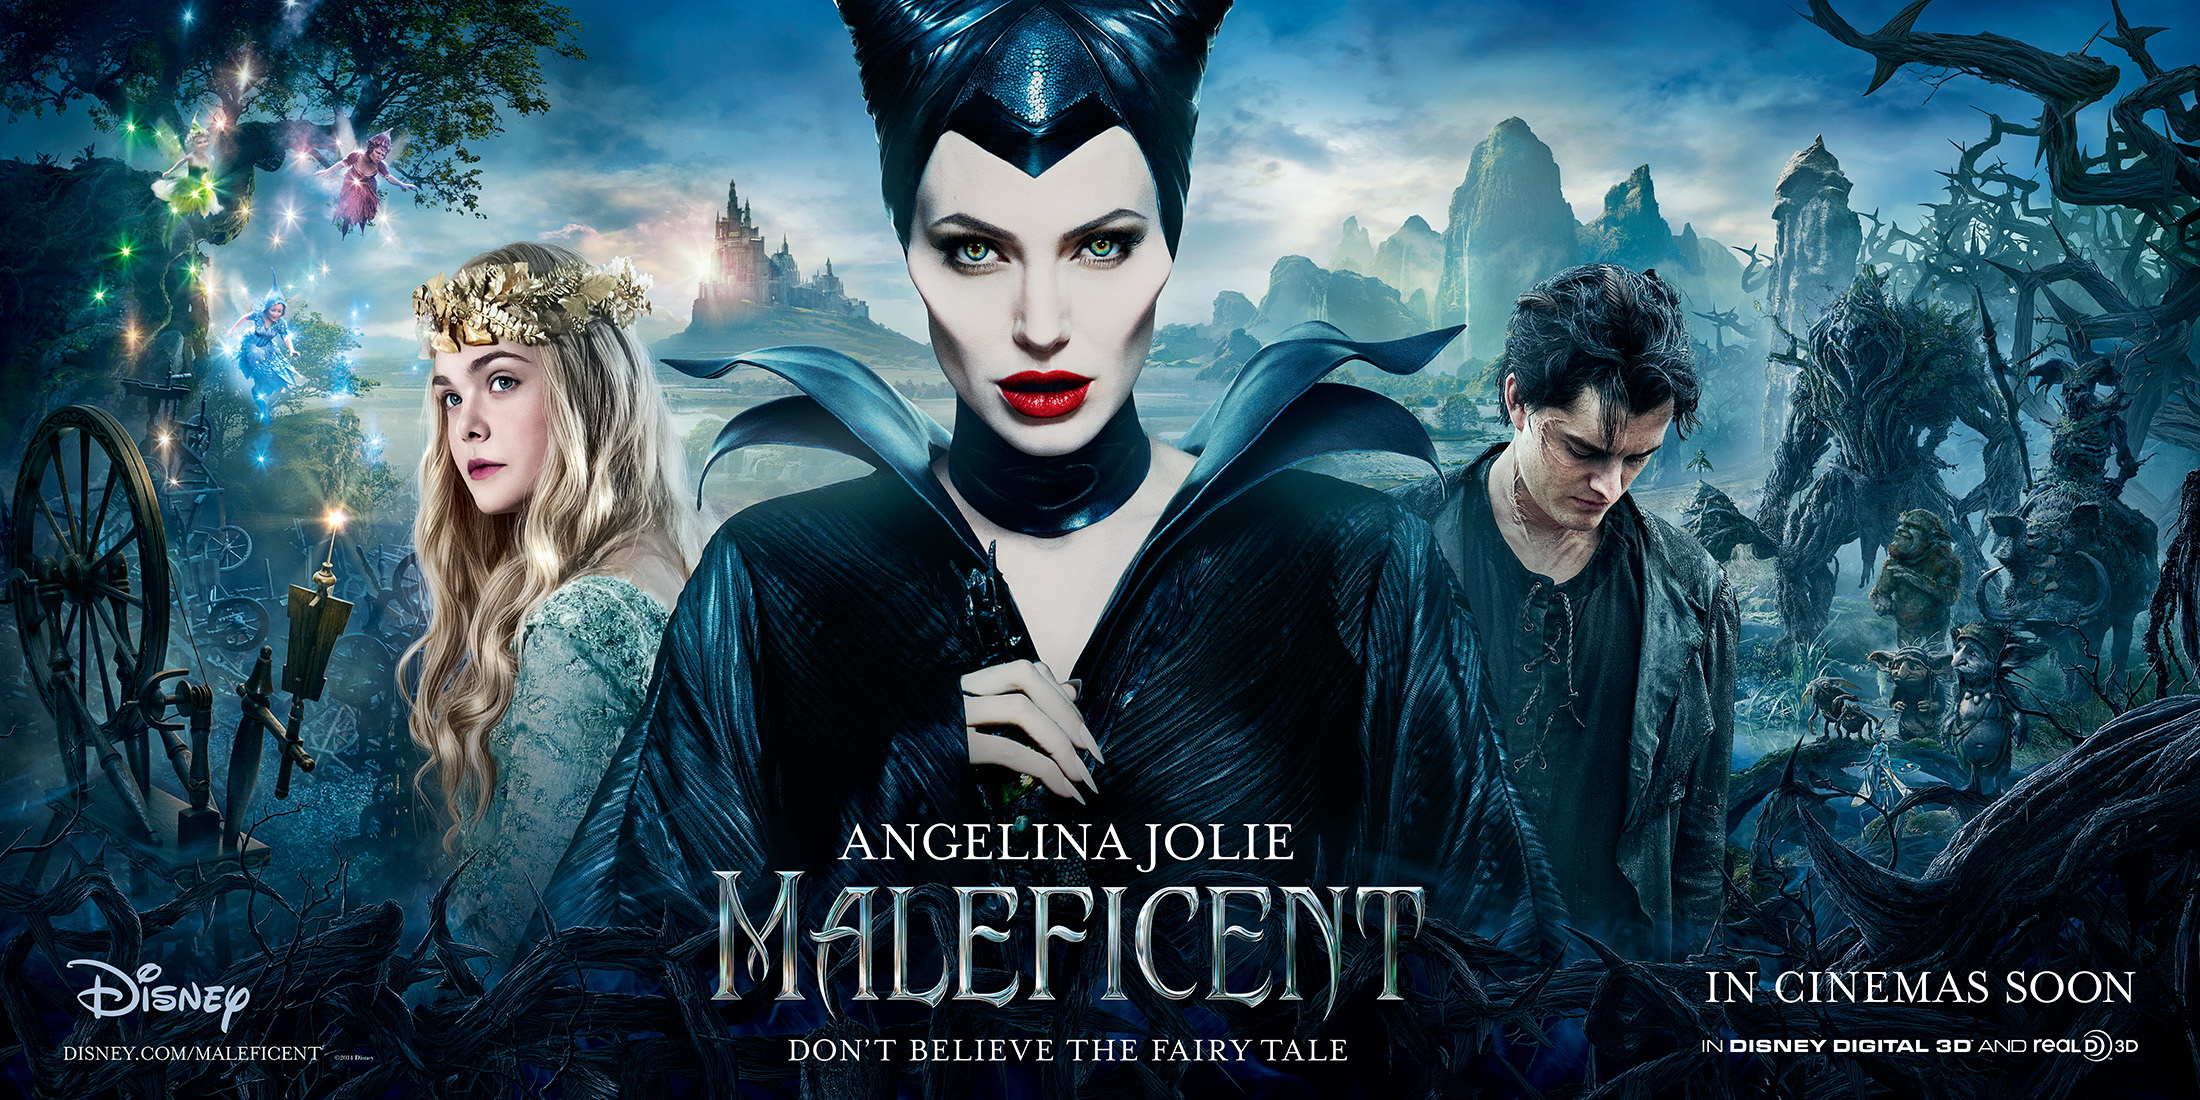 Maleficent-Official Poster Banner PROMO XLG-04ABRIL2014-02